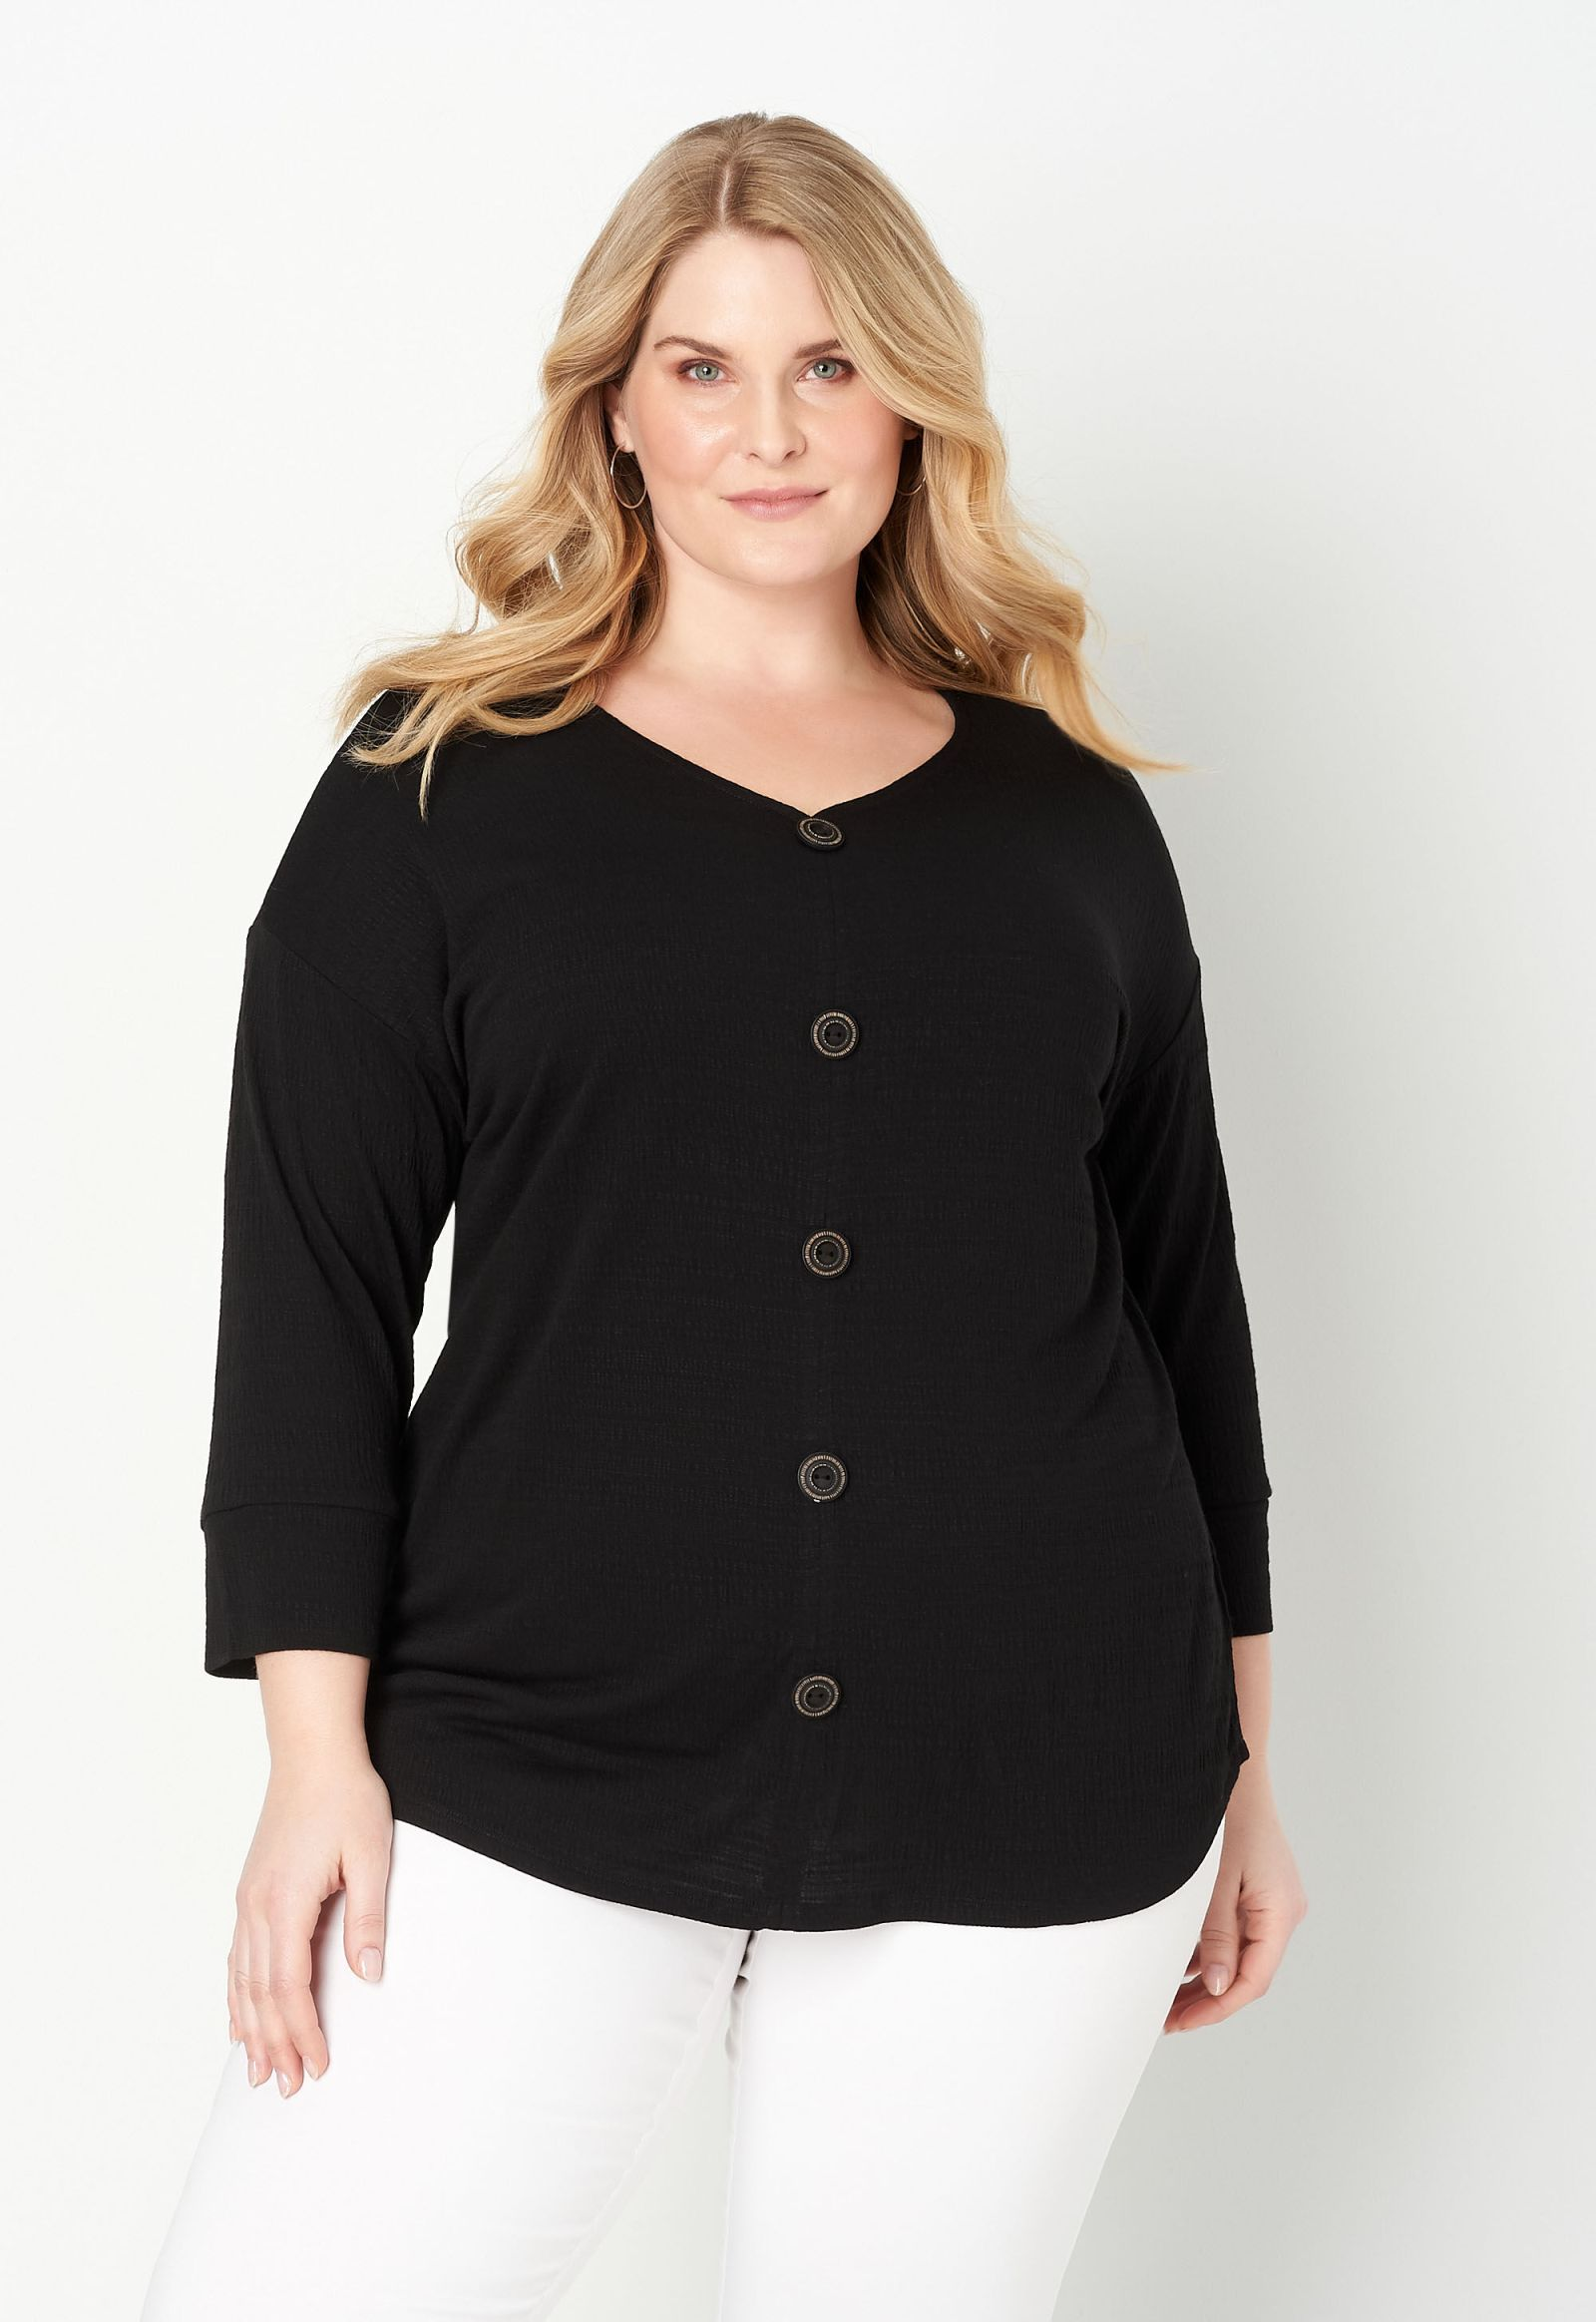 Button Front Solid Plus Size Knit Top 2